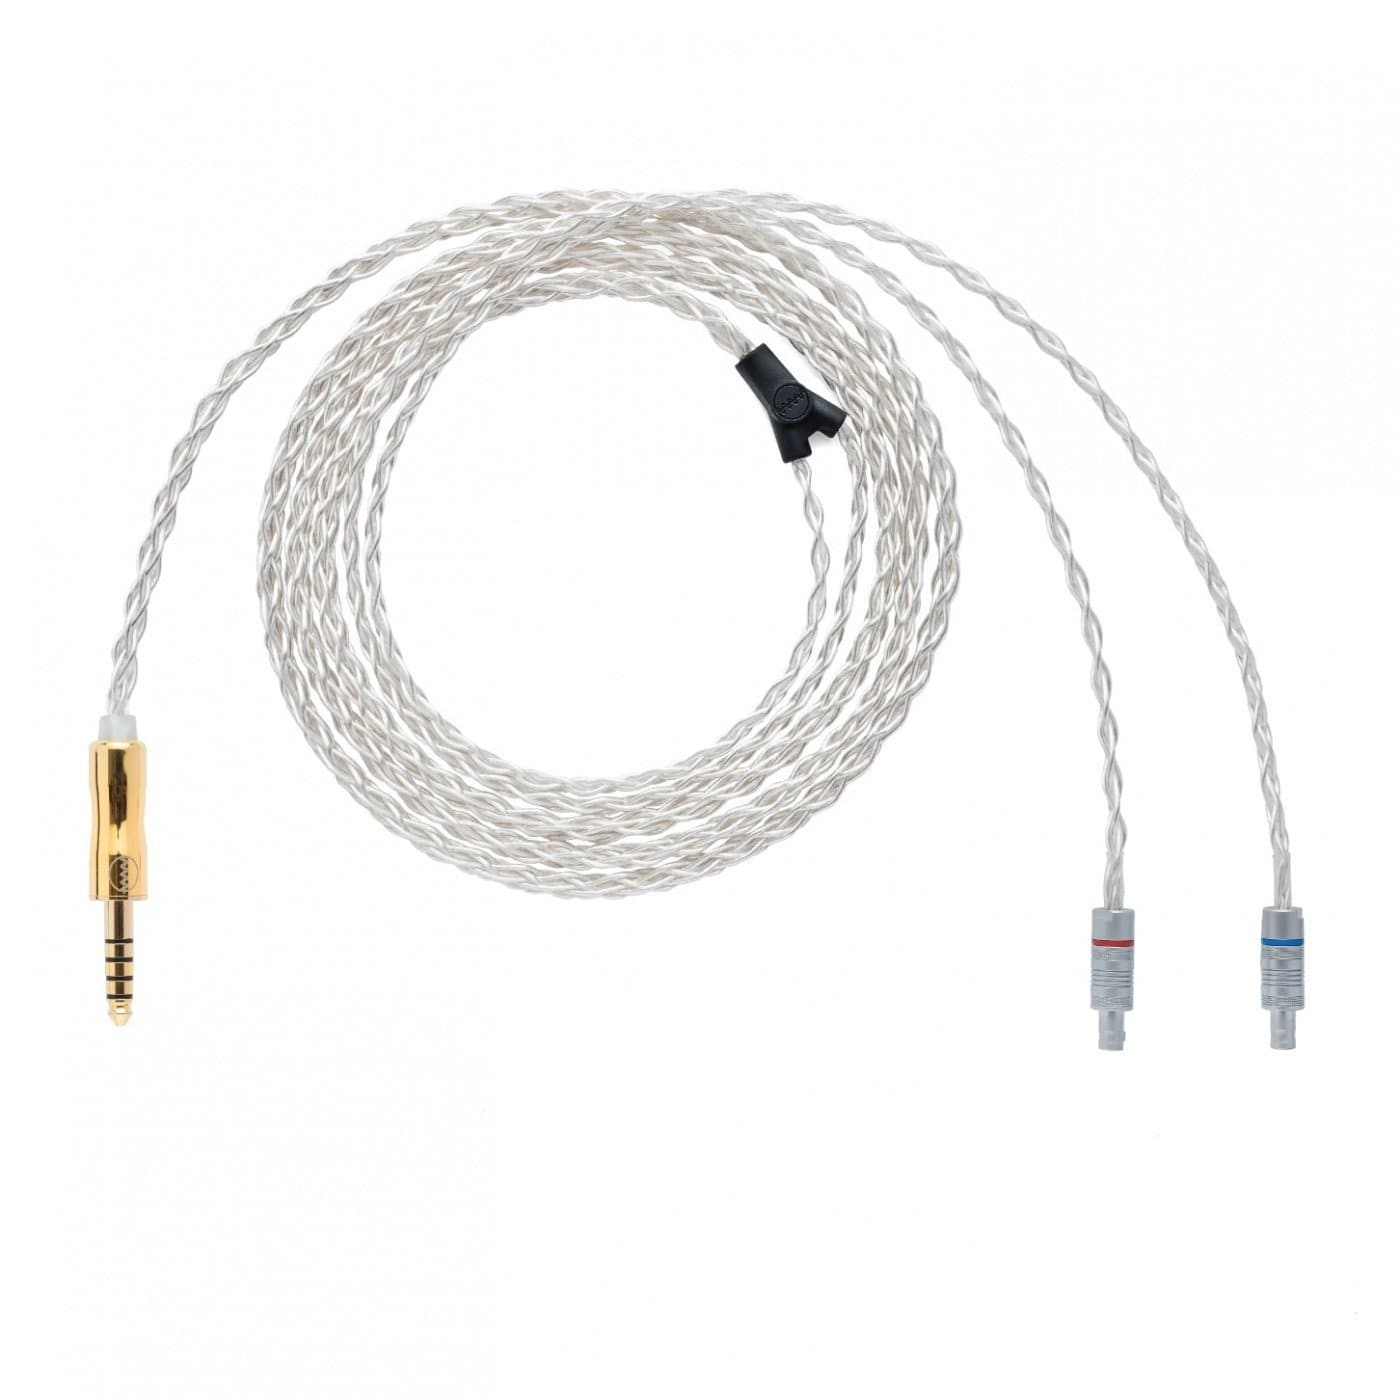 ALO Audio SXC 8 balanced 4.4mm headphone cable